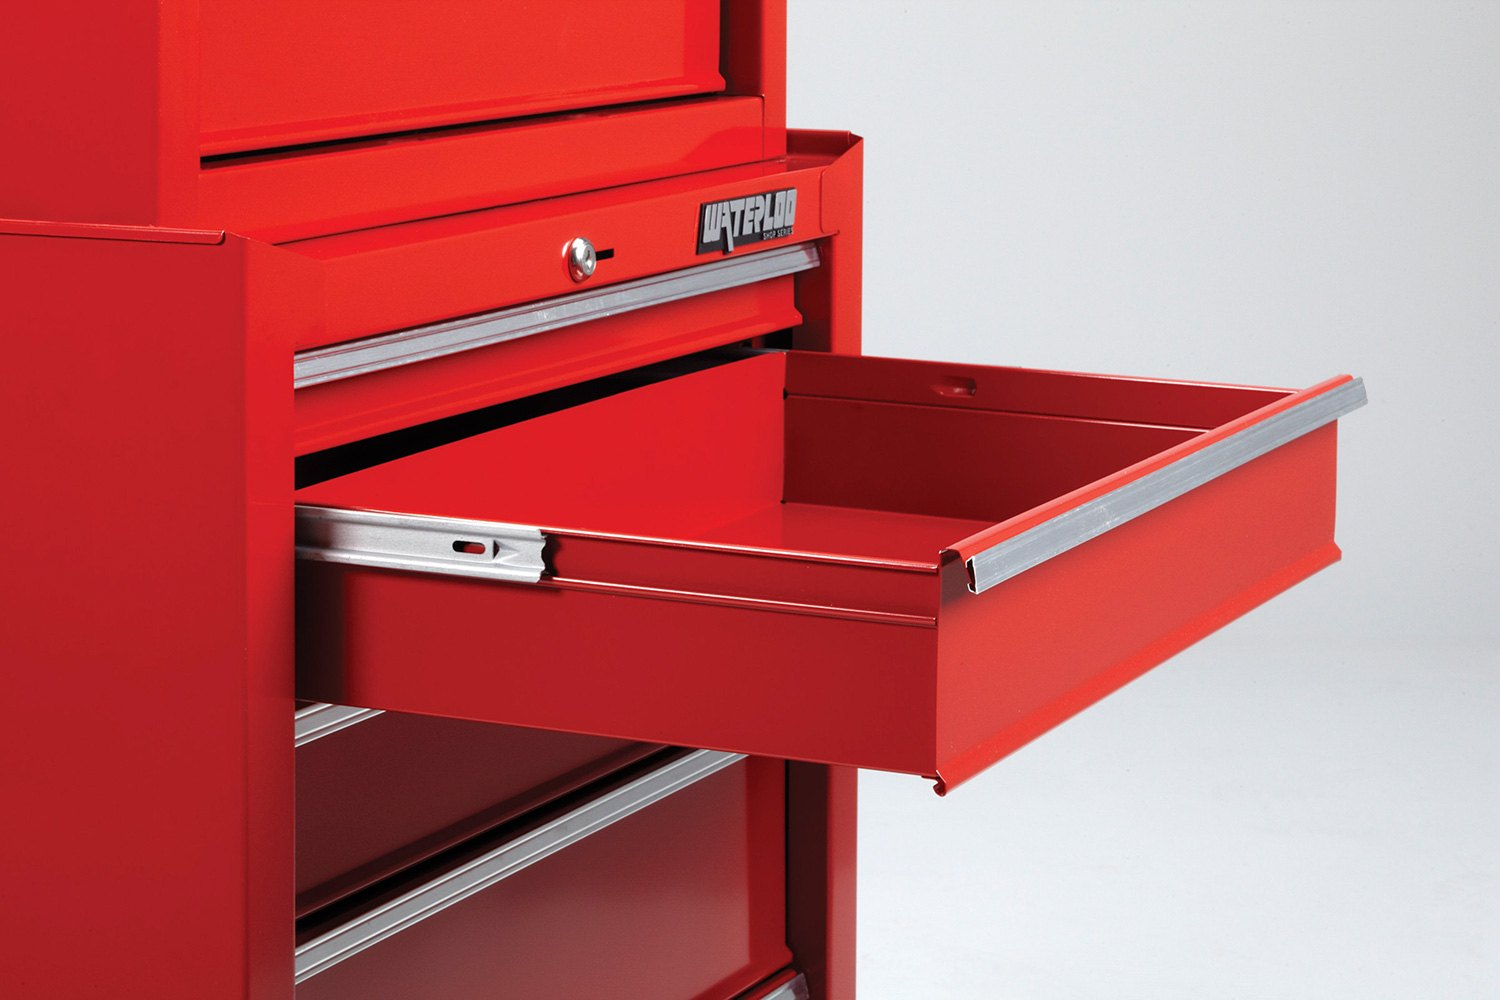 roller ext tools extreme cabinet bearing autosourcetoday tool storage waterloo viewcategory